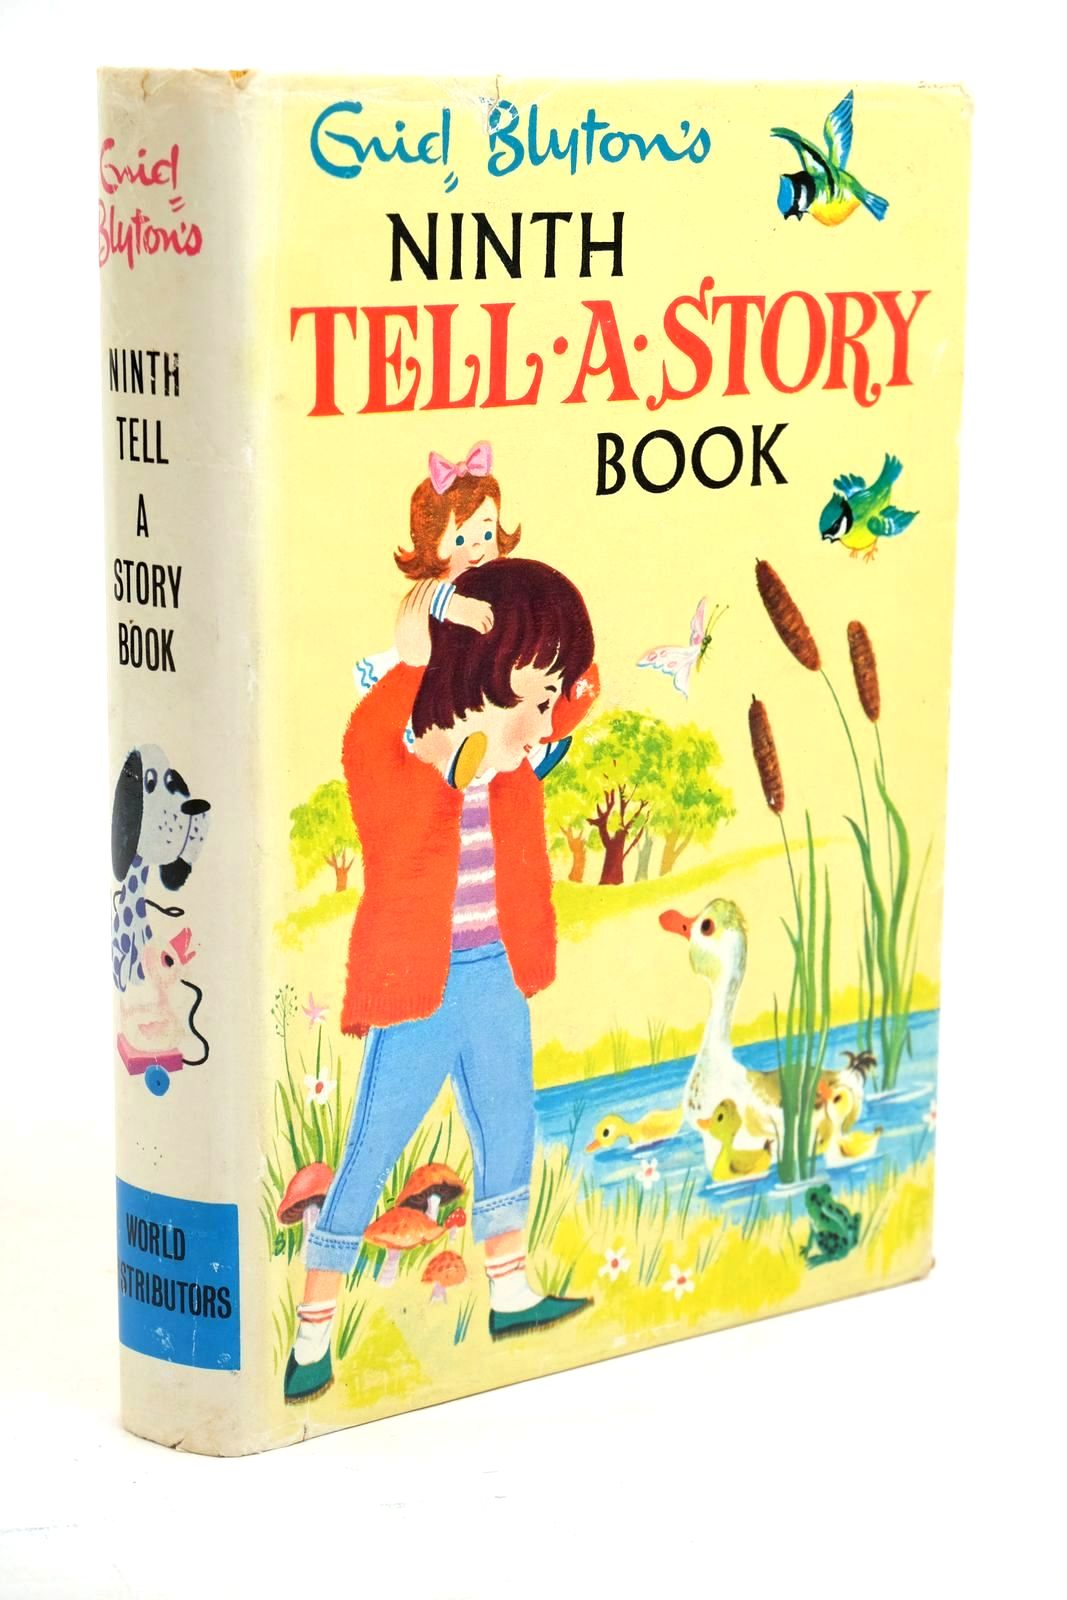 Photo of ENID BLYTON'S NINTH TELL-A-STORY BOOK written by Blyton, Enid published by World Distributors Ltd. (STOCK CODE: 1321091)  for sale by Stella & Rose's Books